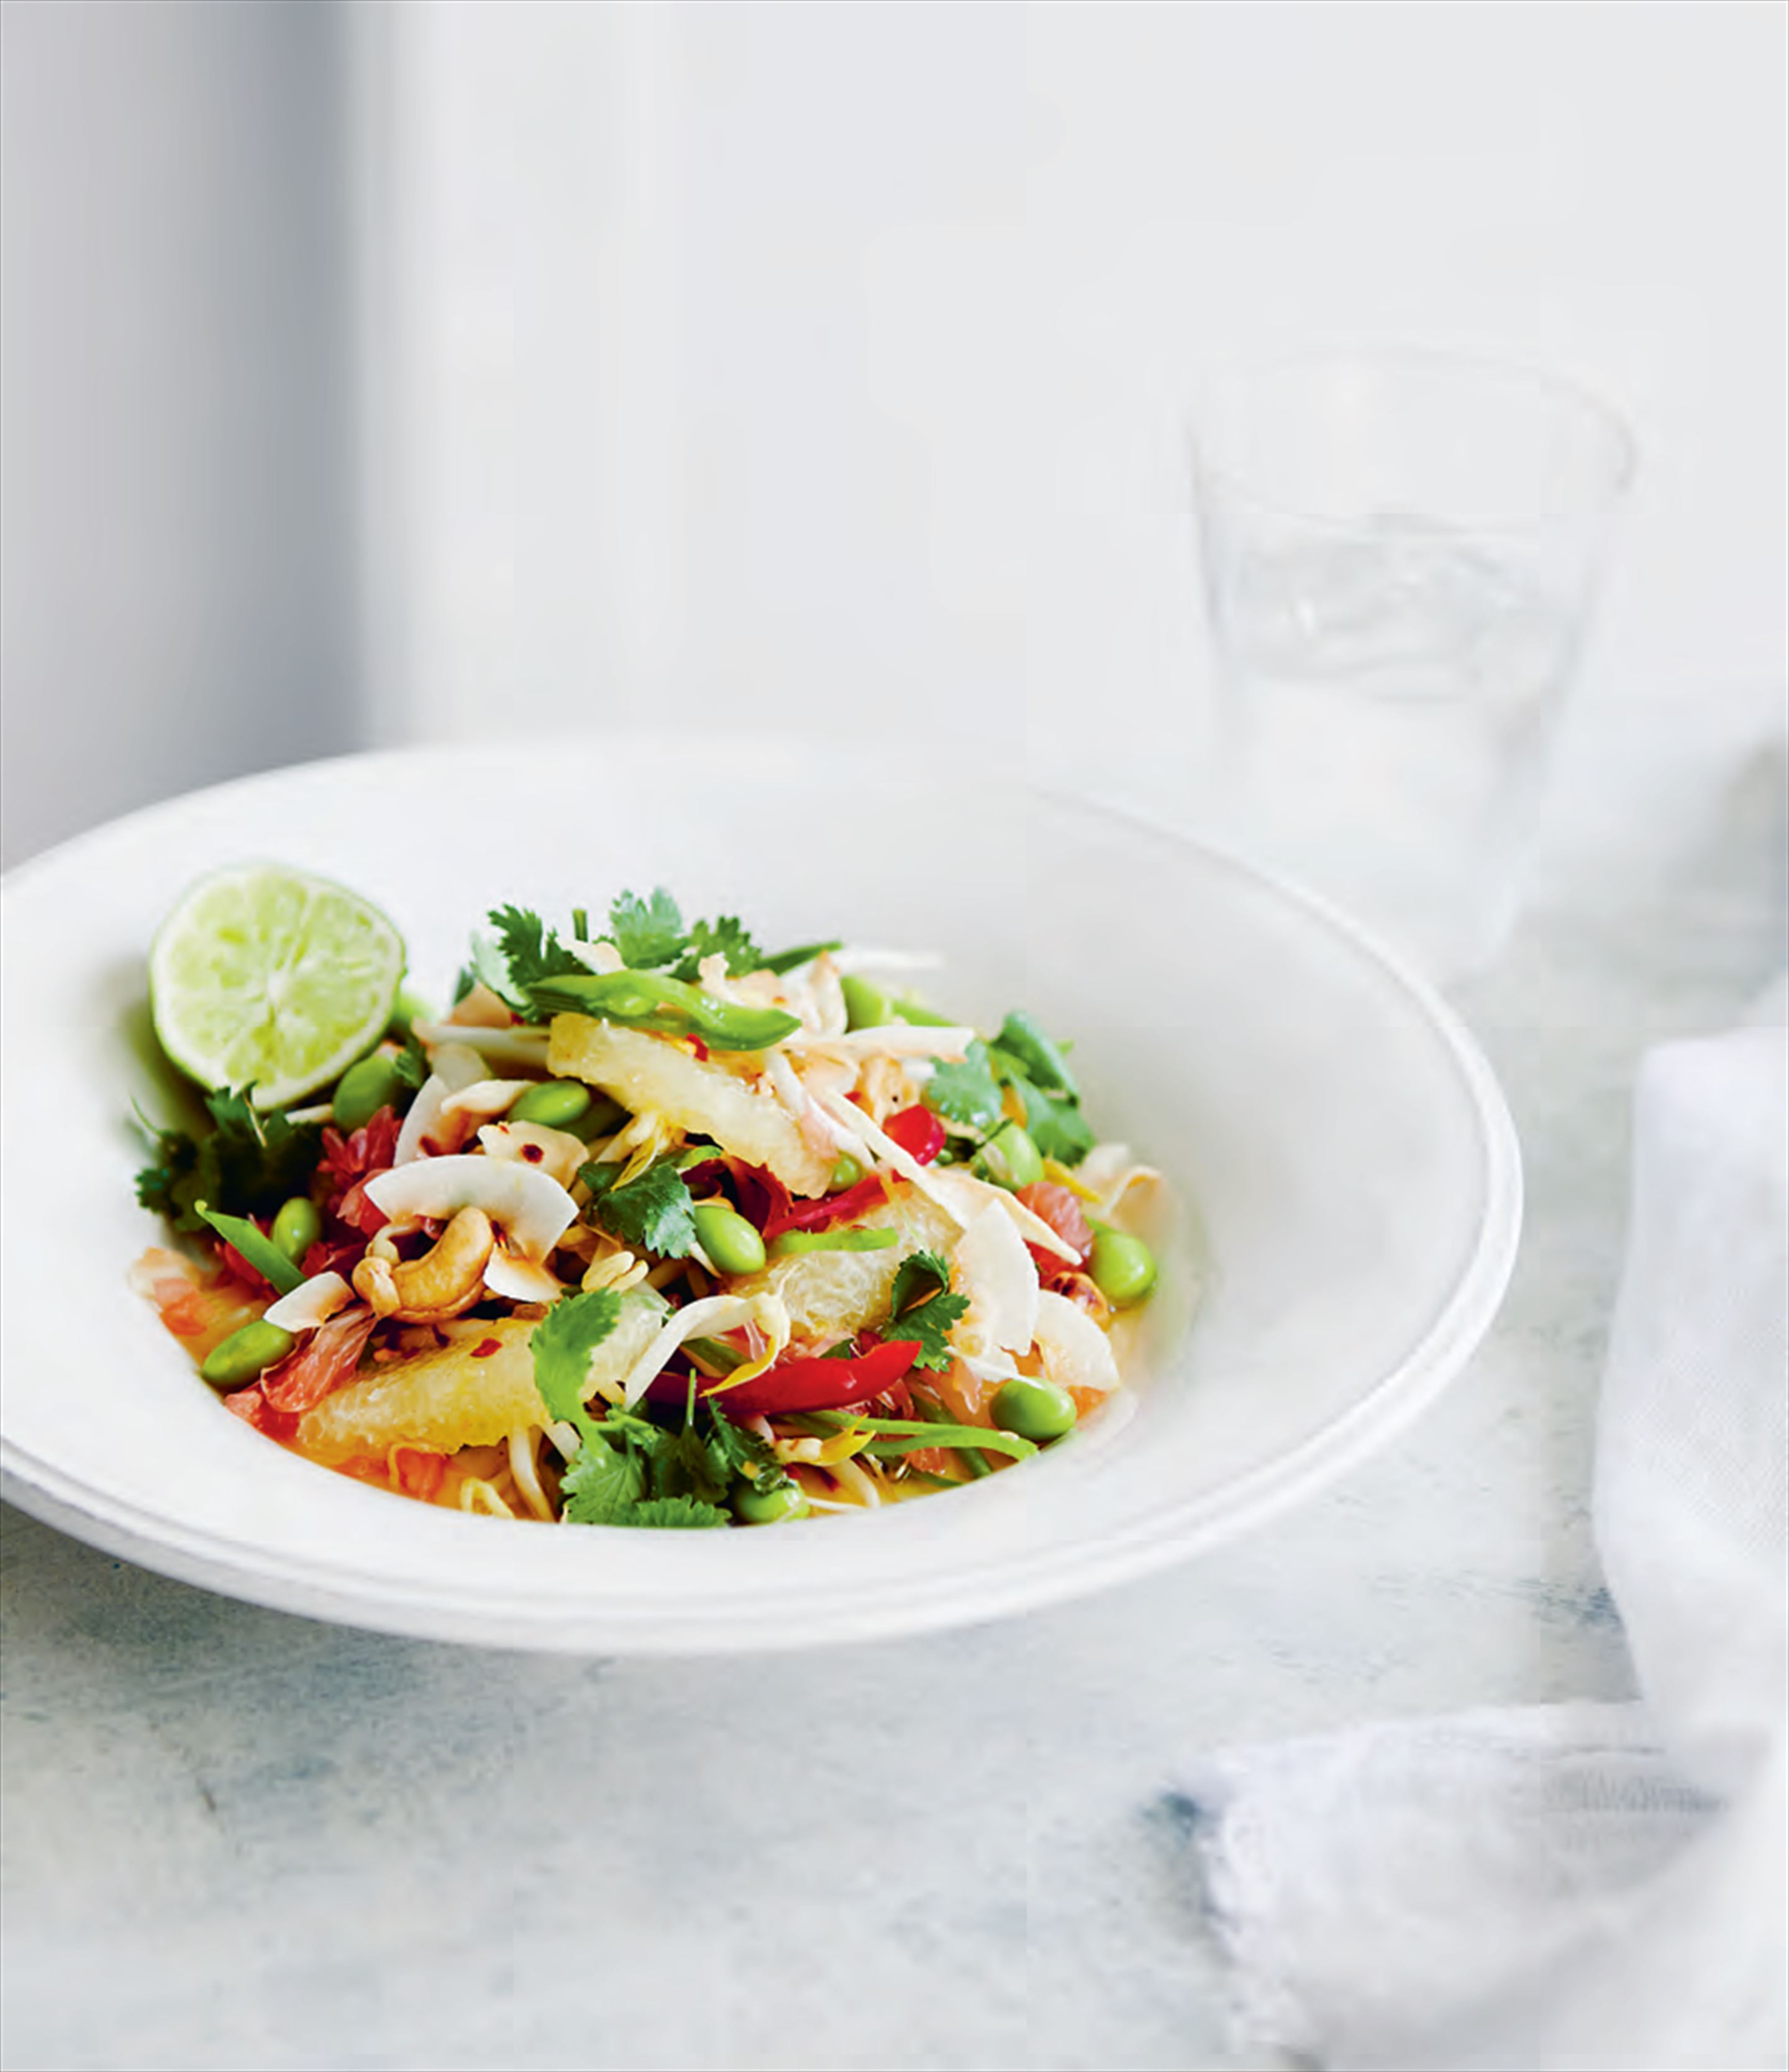 Spice-infused pomelo salad